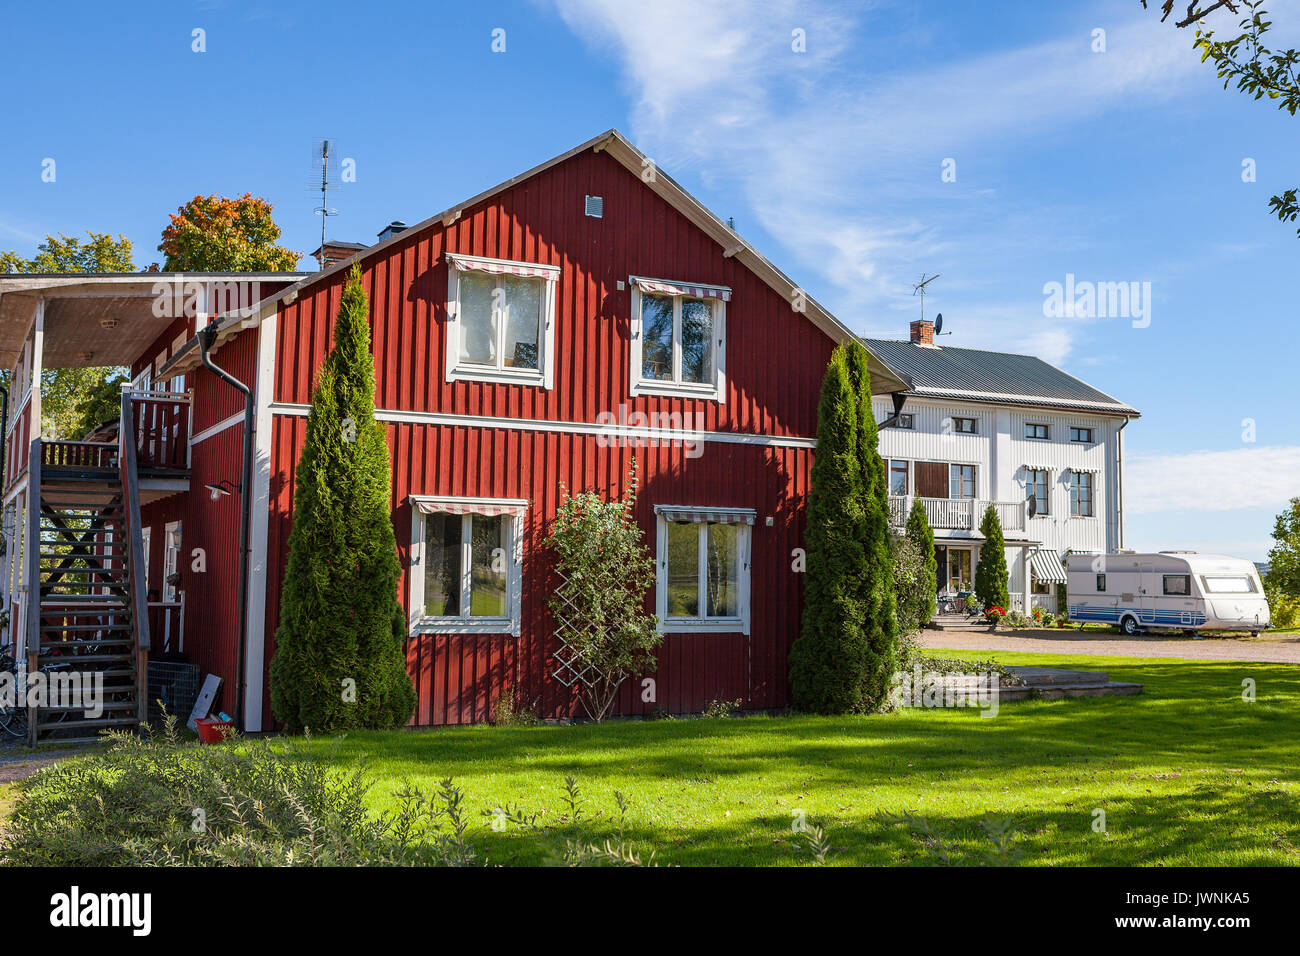 Typical Red Country House Swedish Stock Photos & Typical Red Country on swedish interior design, swedish loft design, swedish restaurant design, swedish office design, swedish garden design, swedish home design, swedish kitchen design, swedish design style, swedish apartment design, swedish modern design, swedish traditional design, swedish cottage design, swedish log cabin design, swedish barn design, swedish country design,